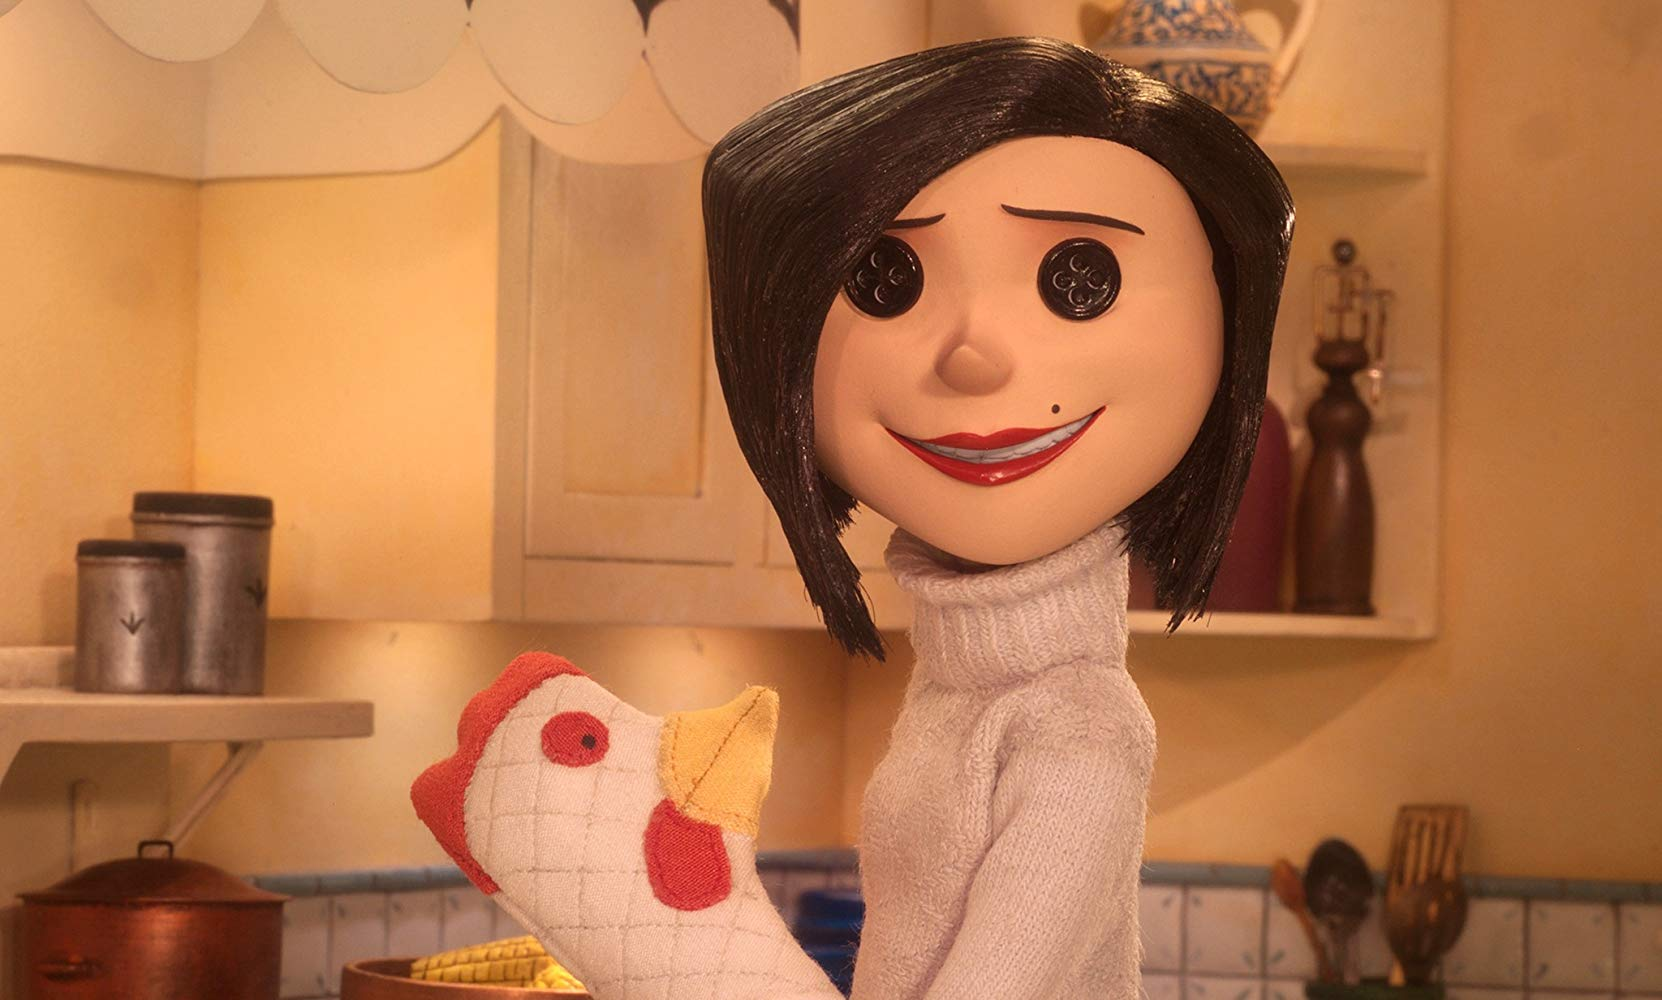 Coraline's mother with buttons for eyes in Coraline (2009)